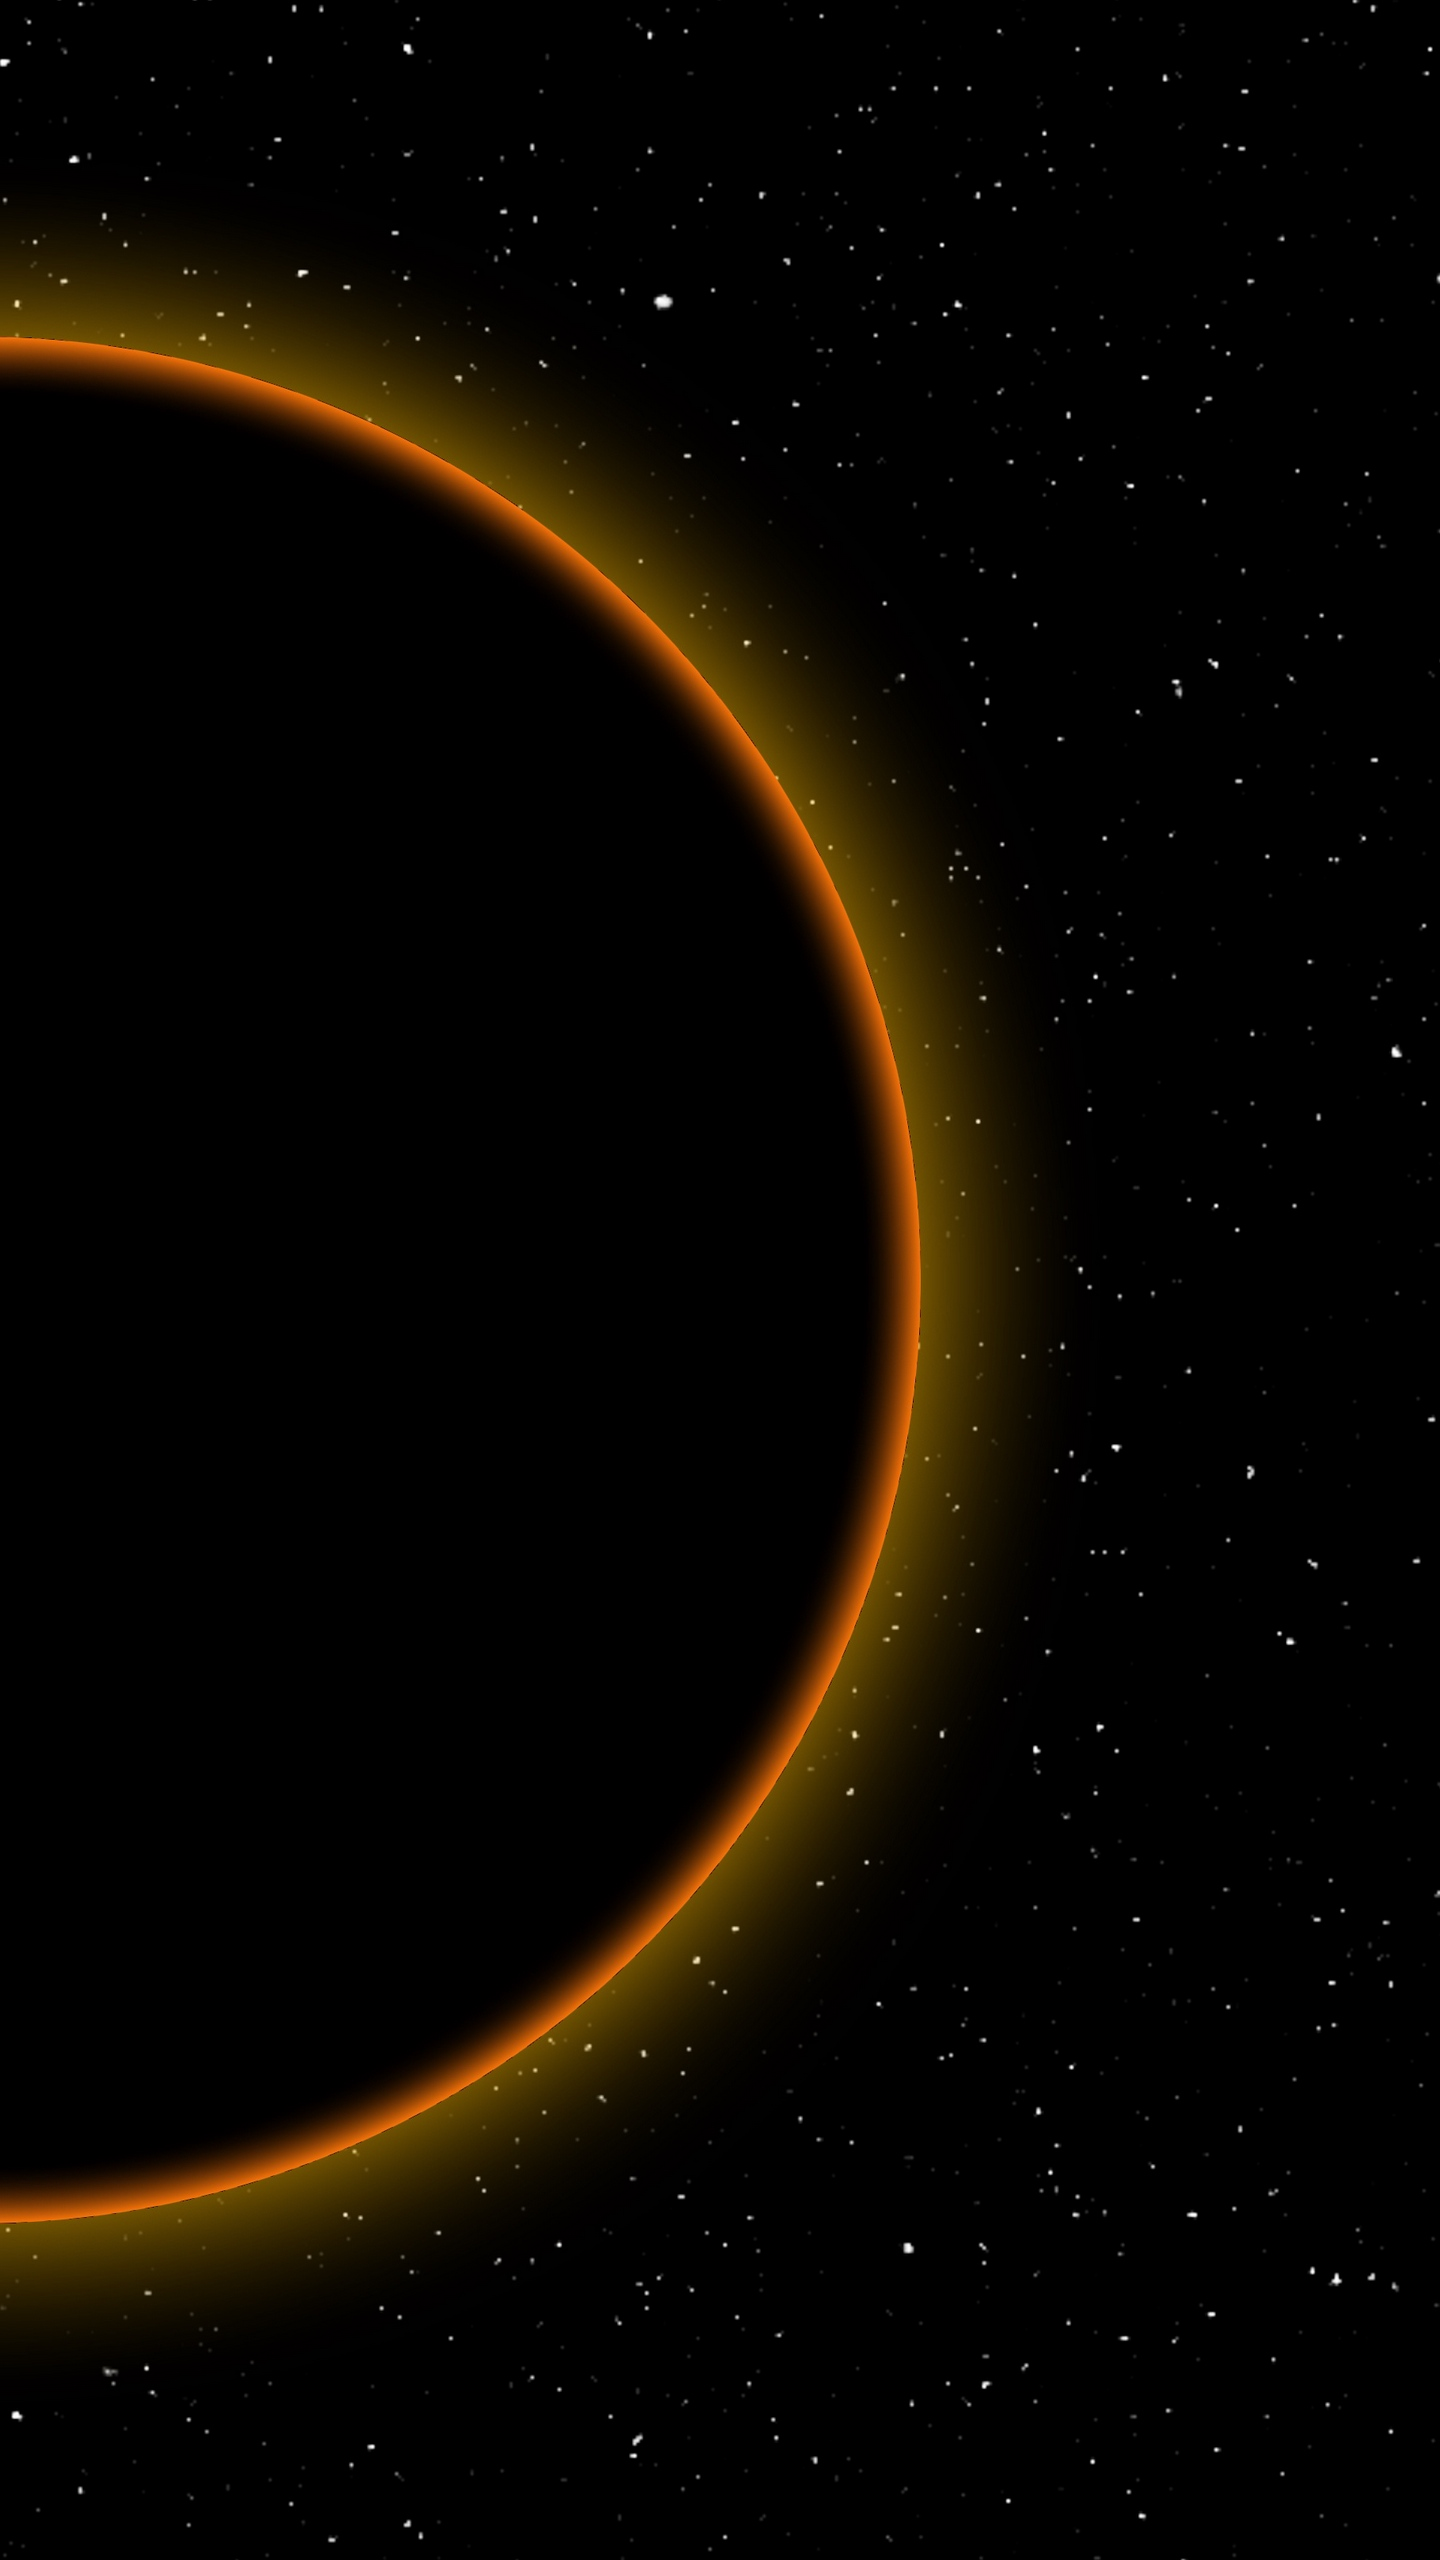 Wallpaper Eclipse, Moon, Sun, Space, Dark, Full Moon - Outer Space , HD Wallpaper & Backgrounds